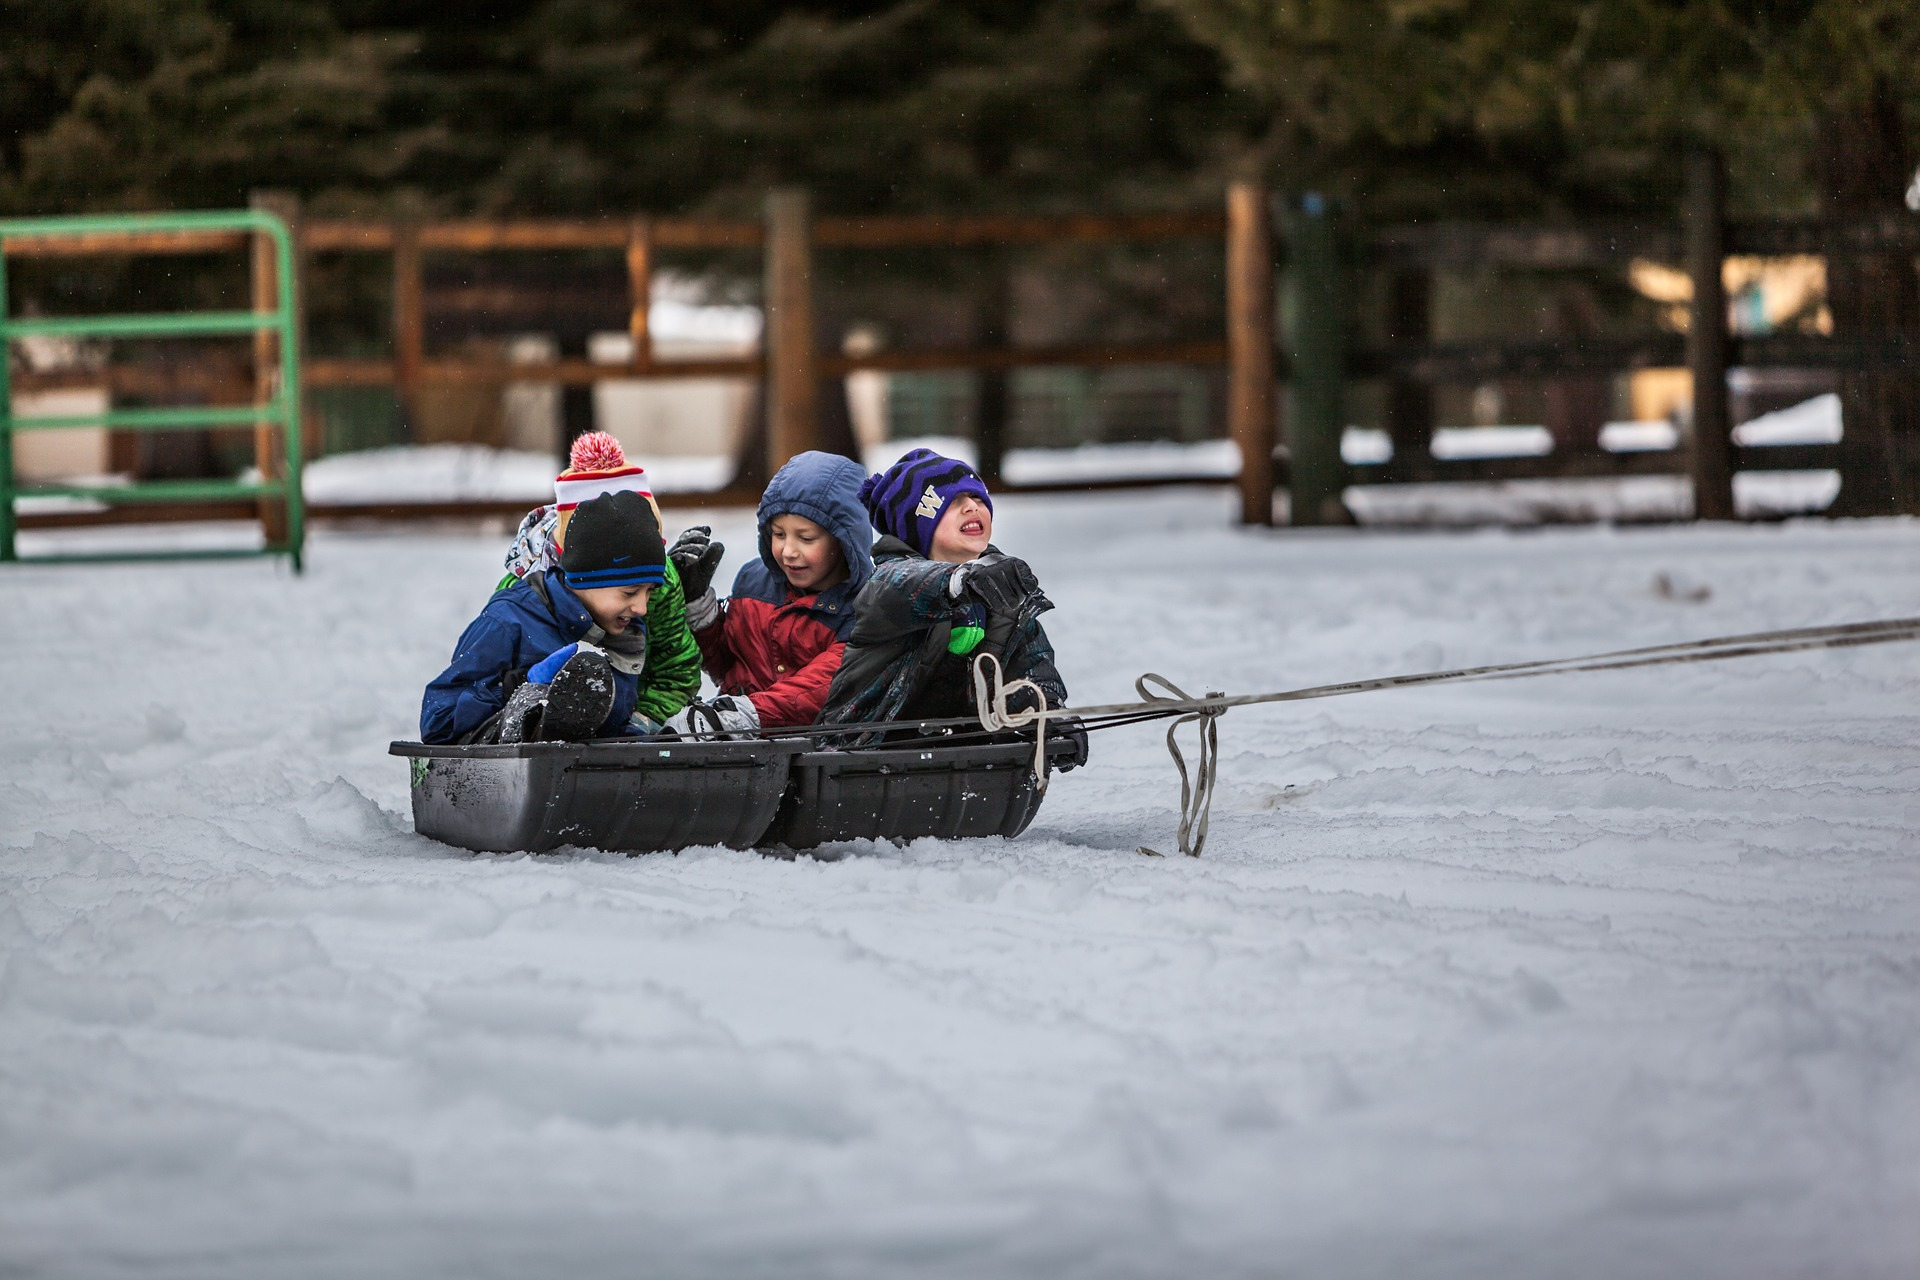 Kids being pulled on a sled